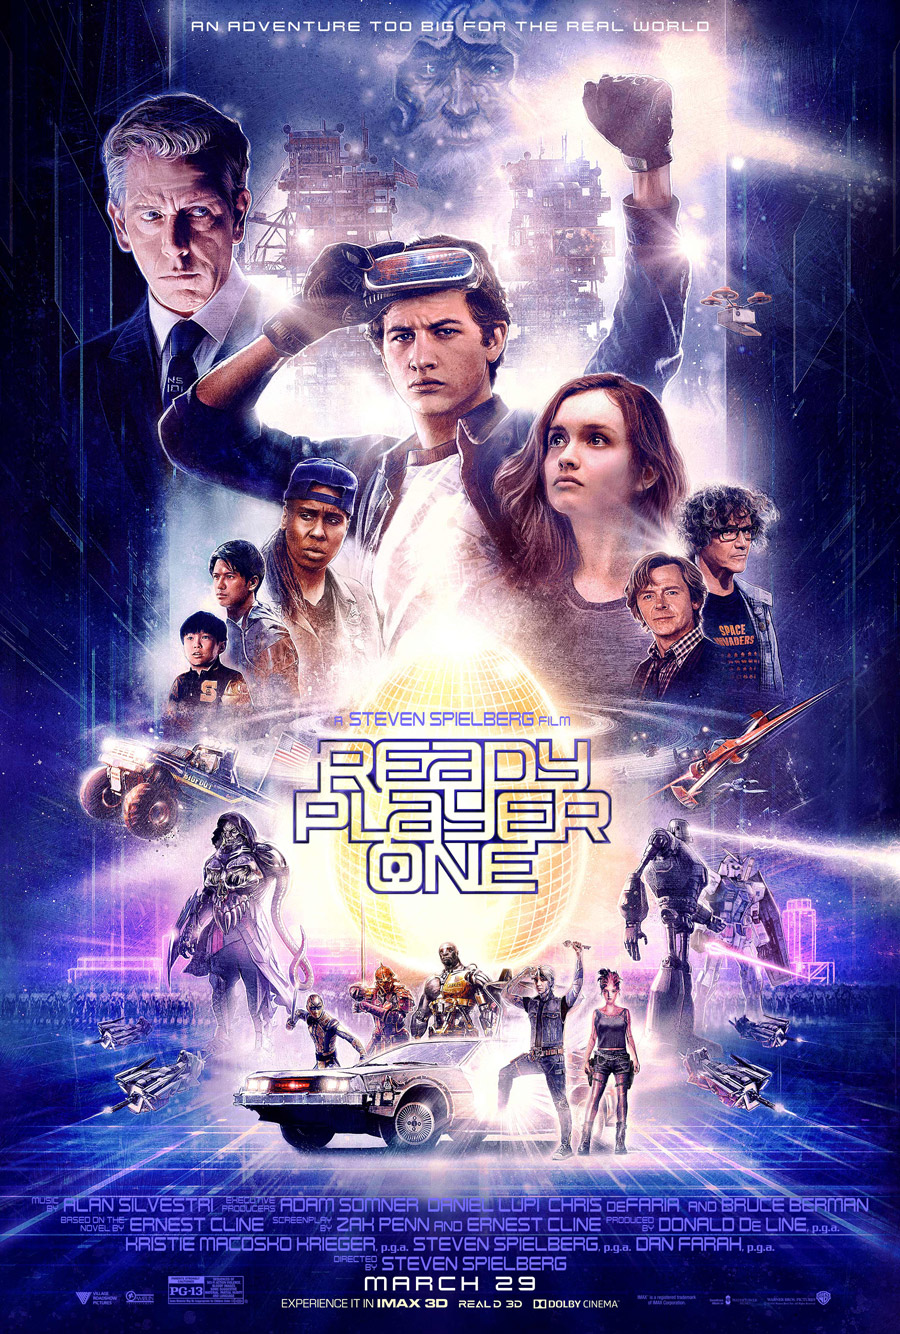 Ready Player One poster art